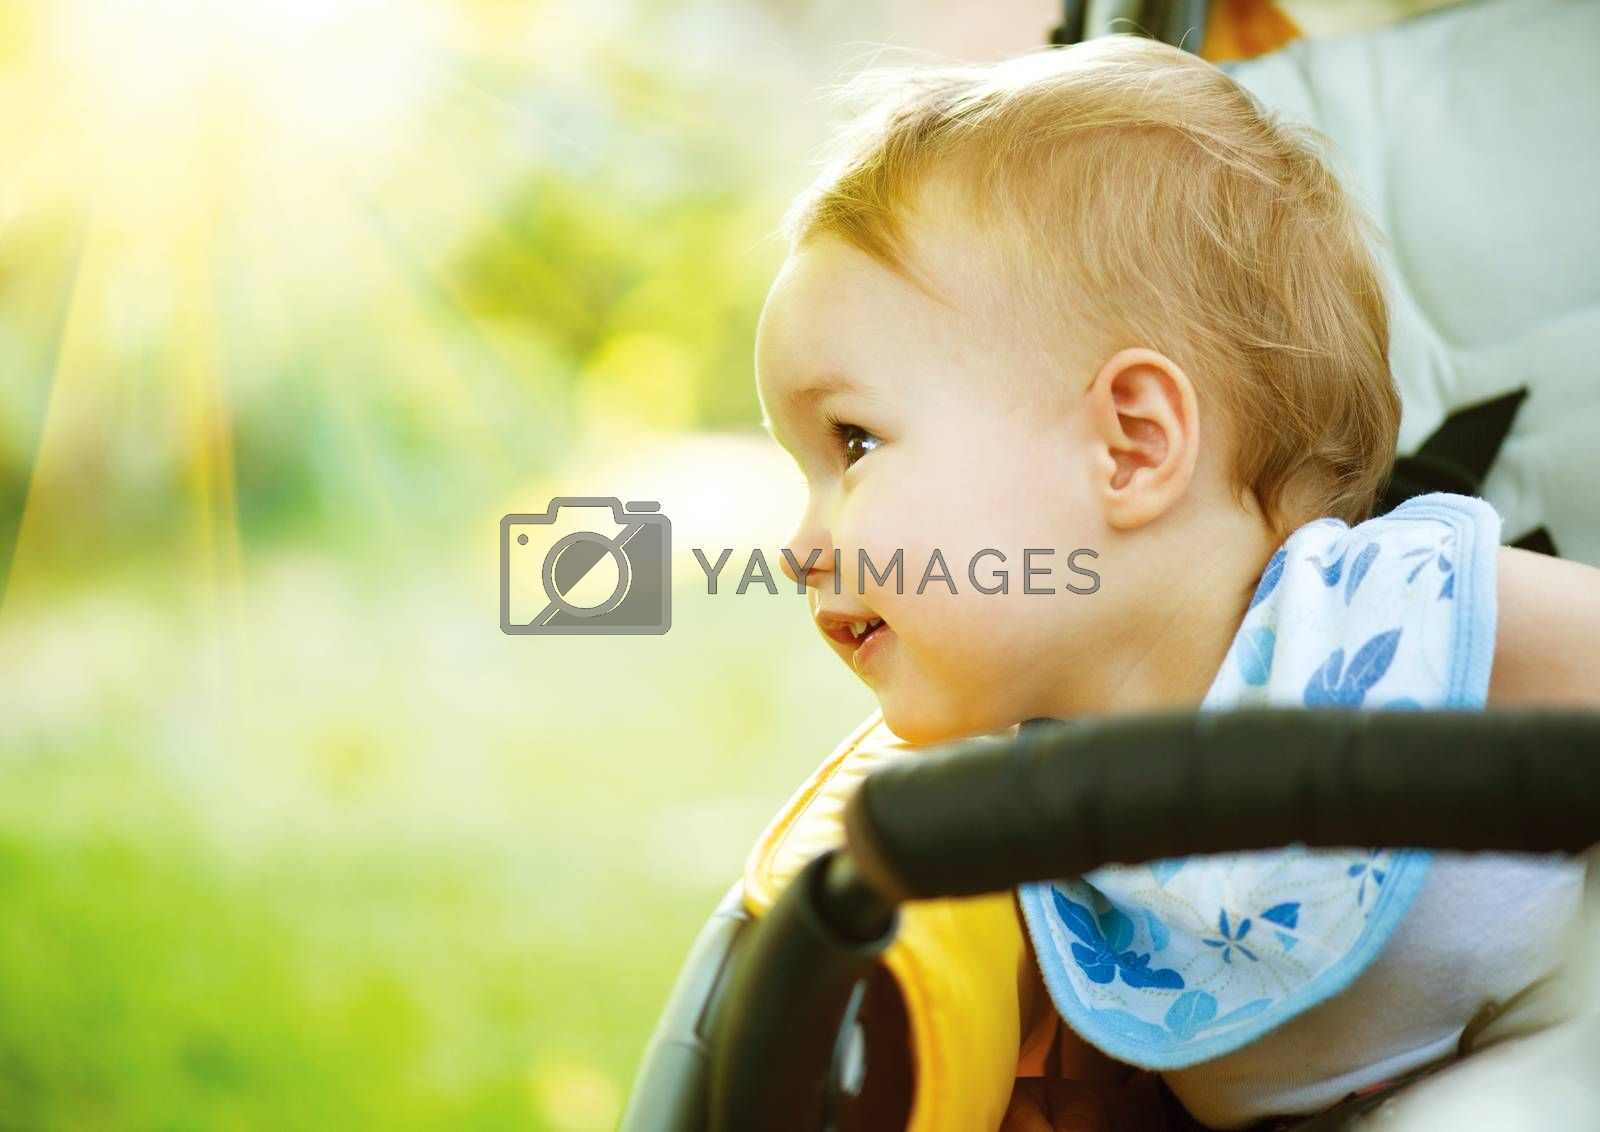 Royalty free image of Little Baby Girl Portrait Outdoor. Smiling Cute Child by SubbotinaA